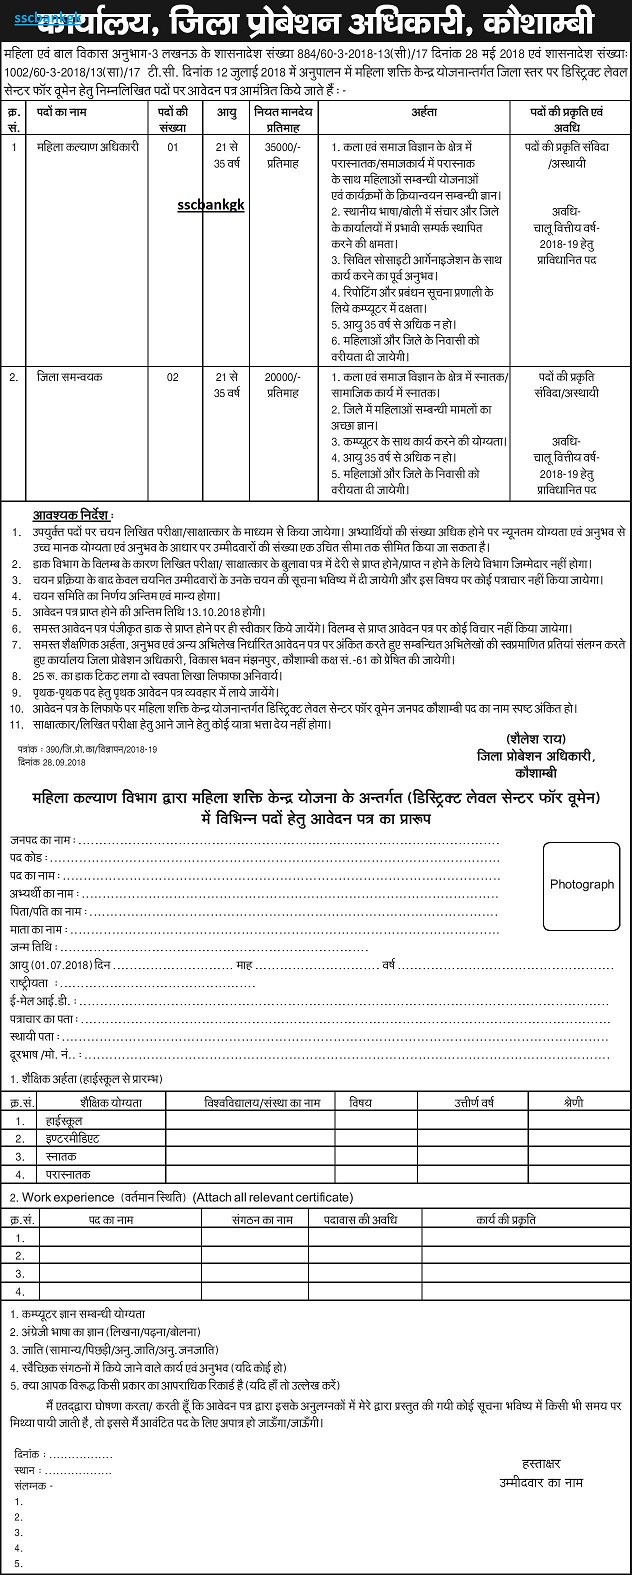 UP District Probation Officer Recruitment 2018 Mahila Adhikari, Samanyavak